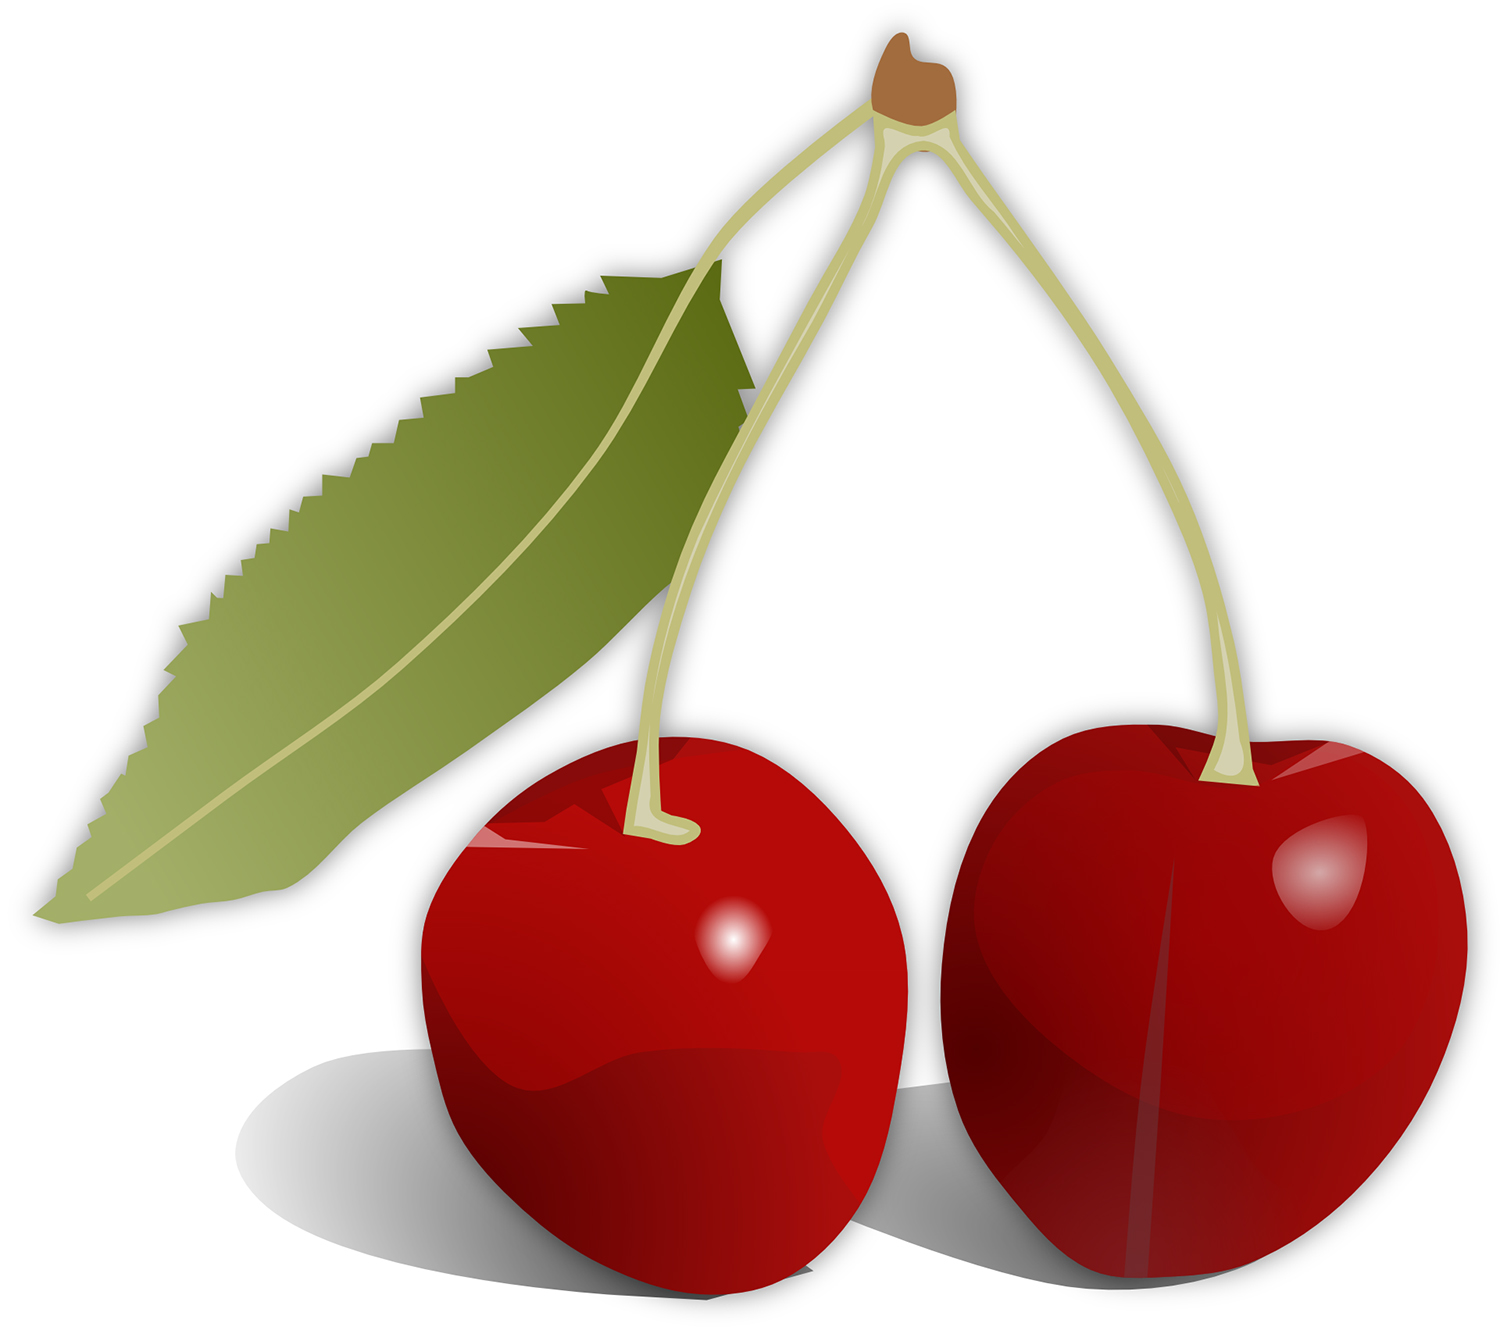 Red Cherries With Leaves Vector Image